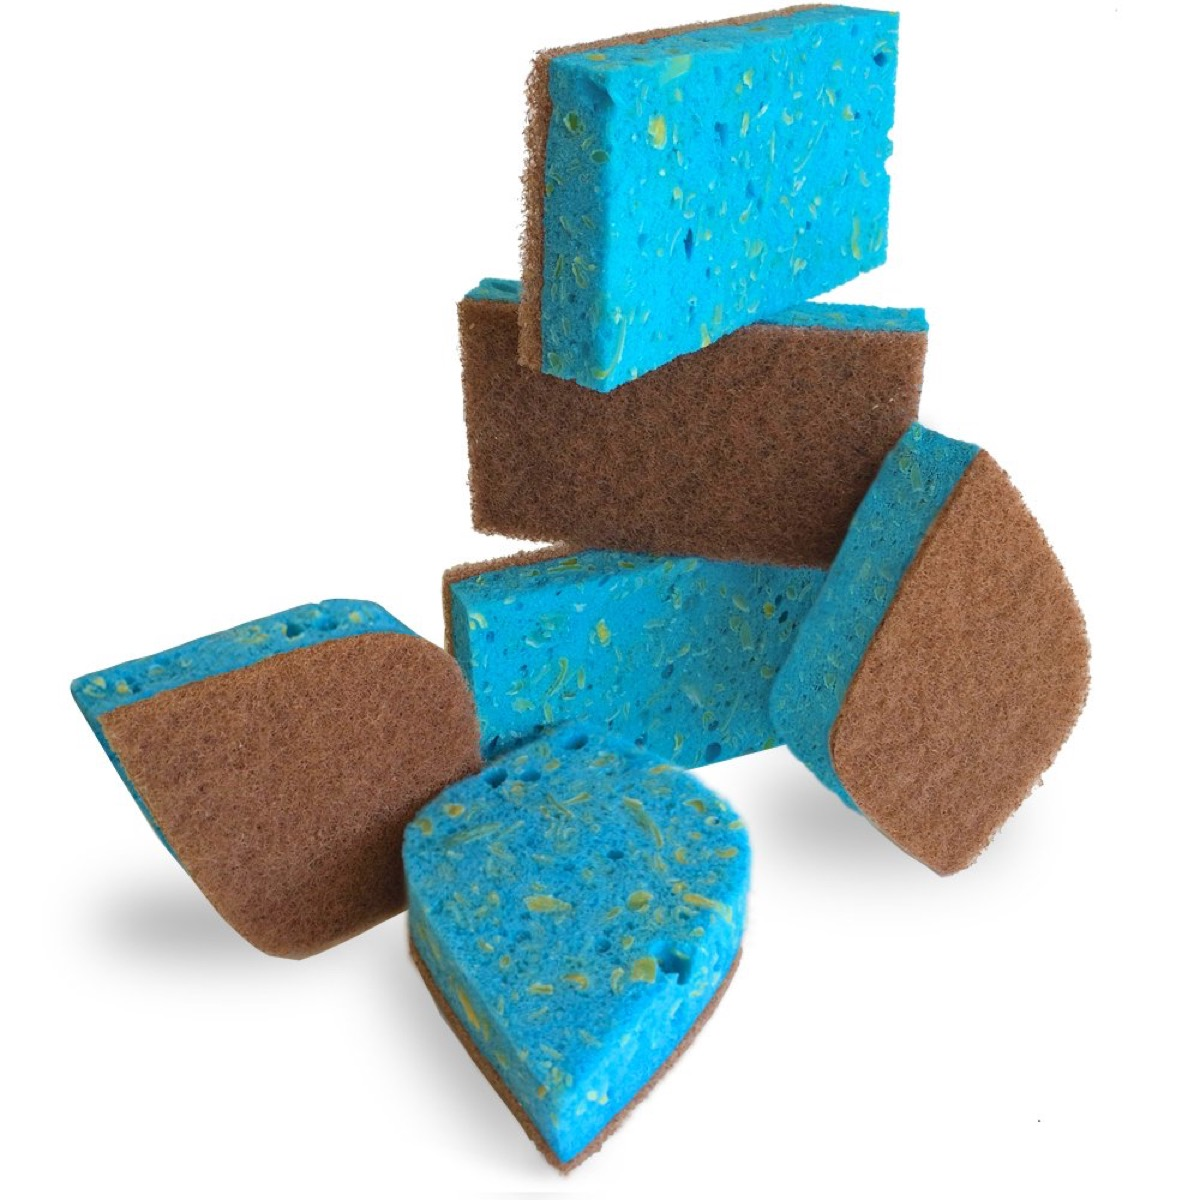 blue and brown sponges, earth friendly cleaning products